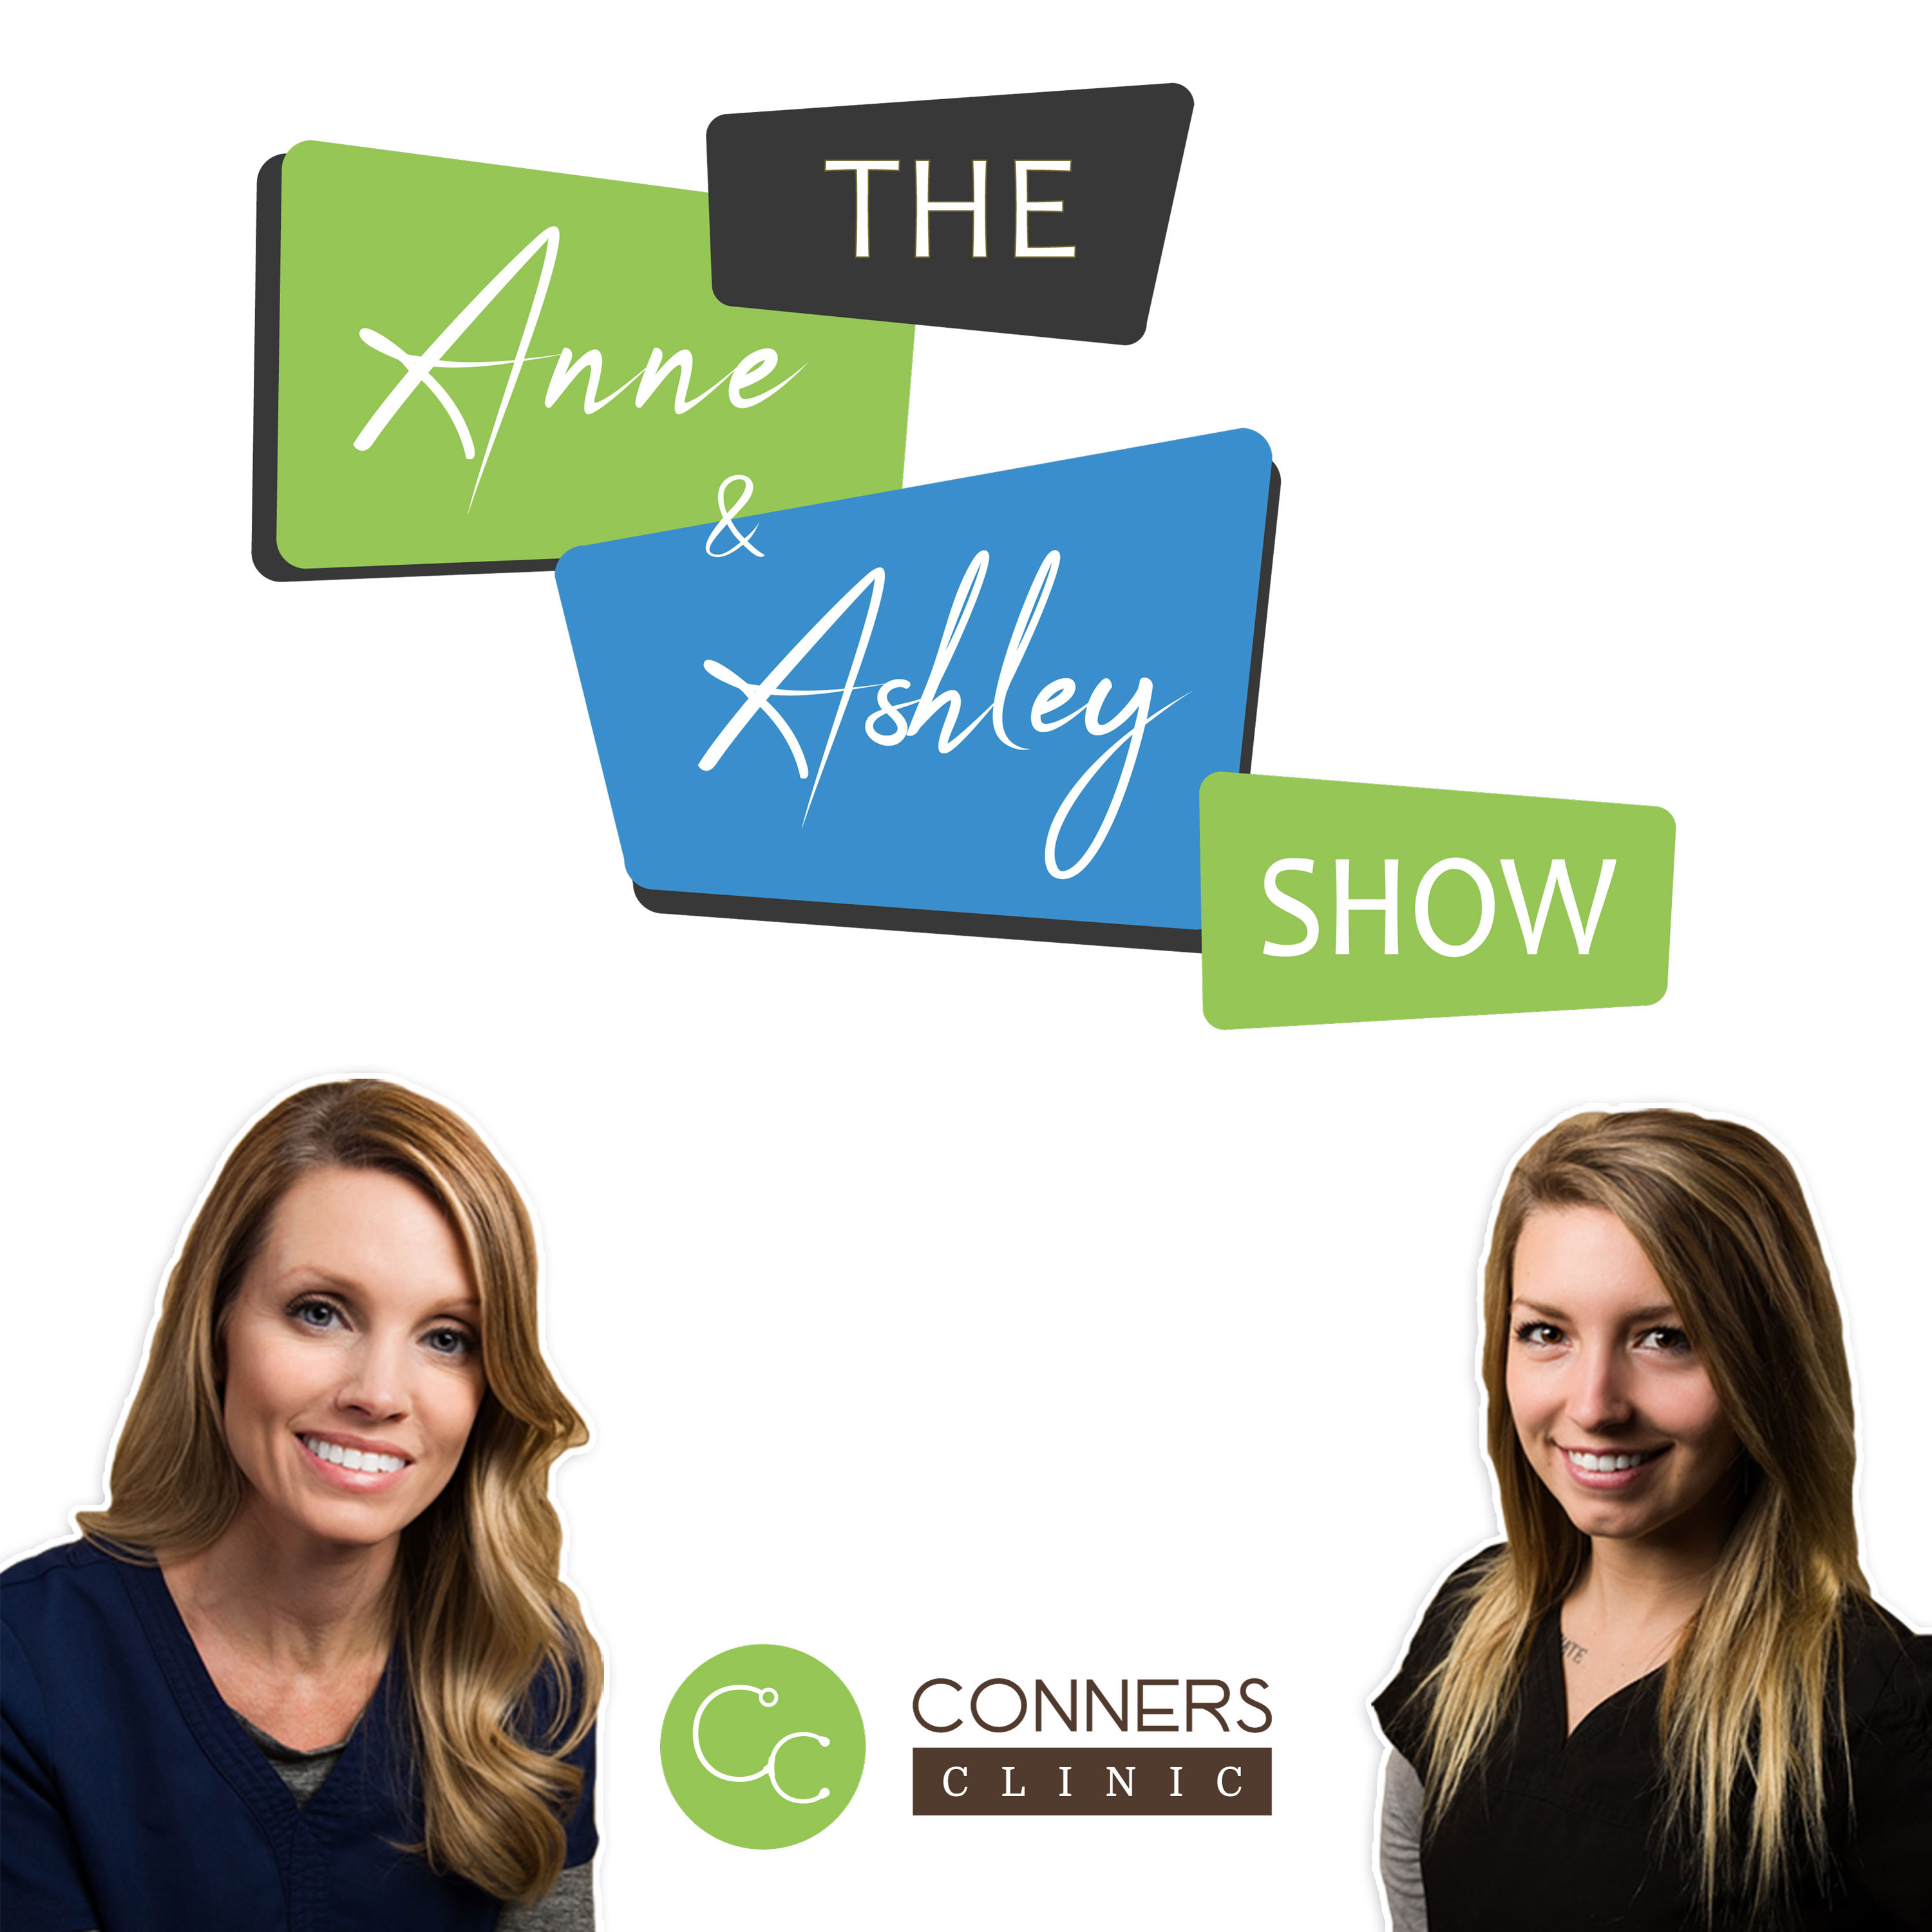 The Anne & Ashley Show | Conners Clinic